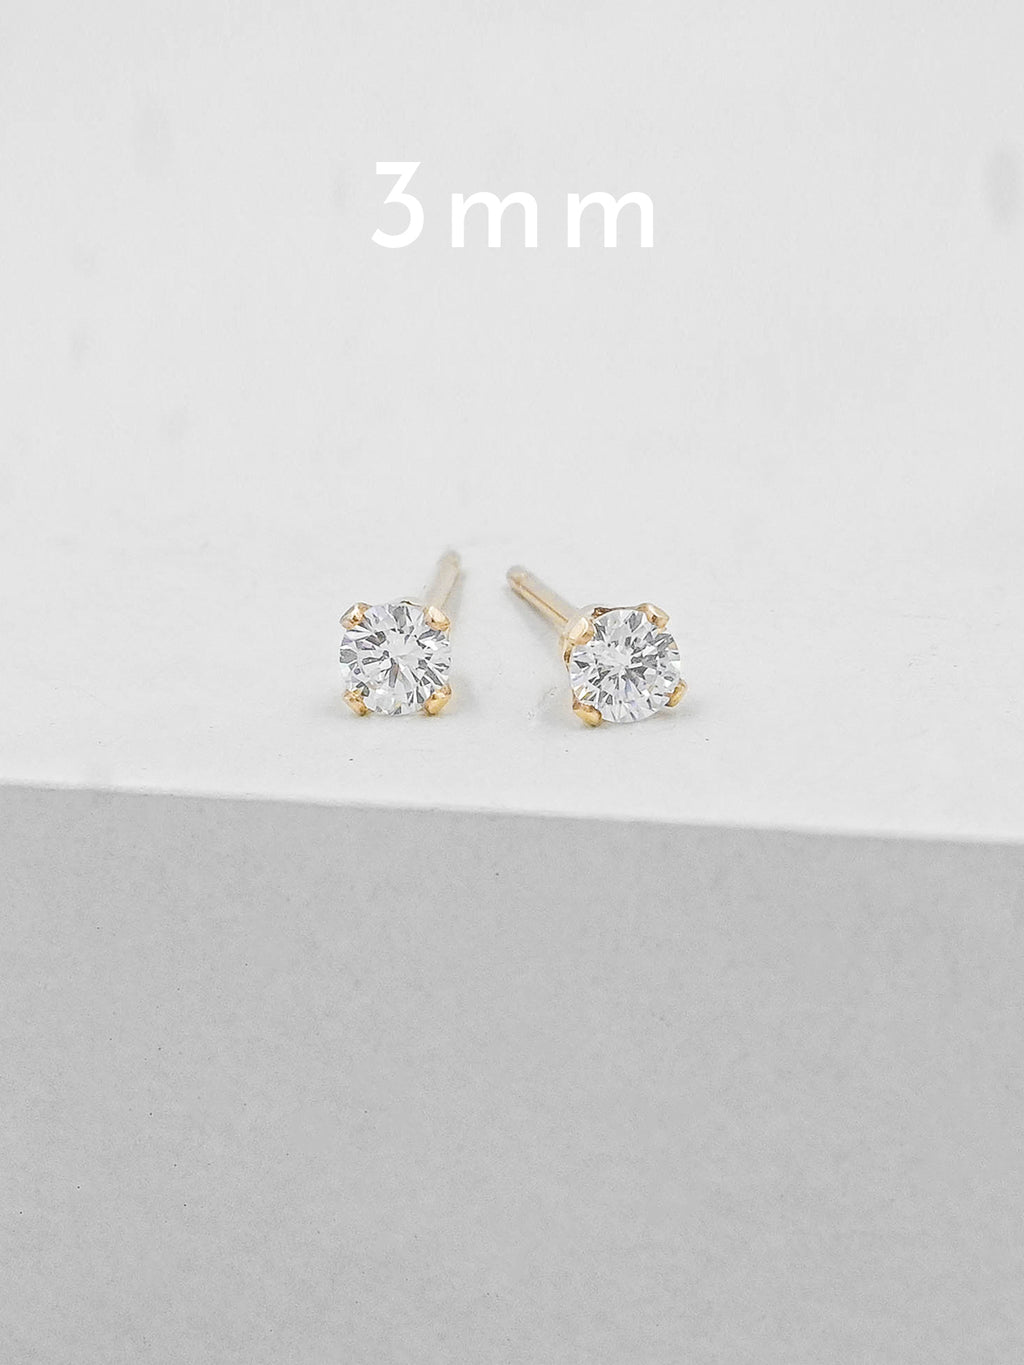 3 mm Gold Plated Solitaire Stud Earrings by The Faint Hearted Jewelry